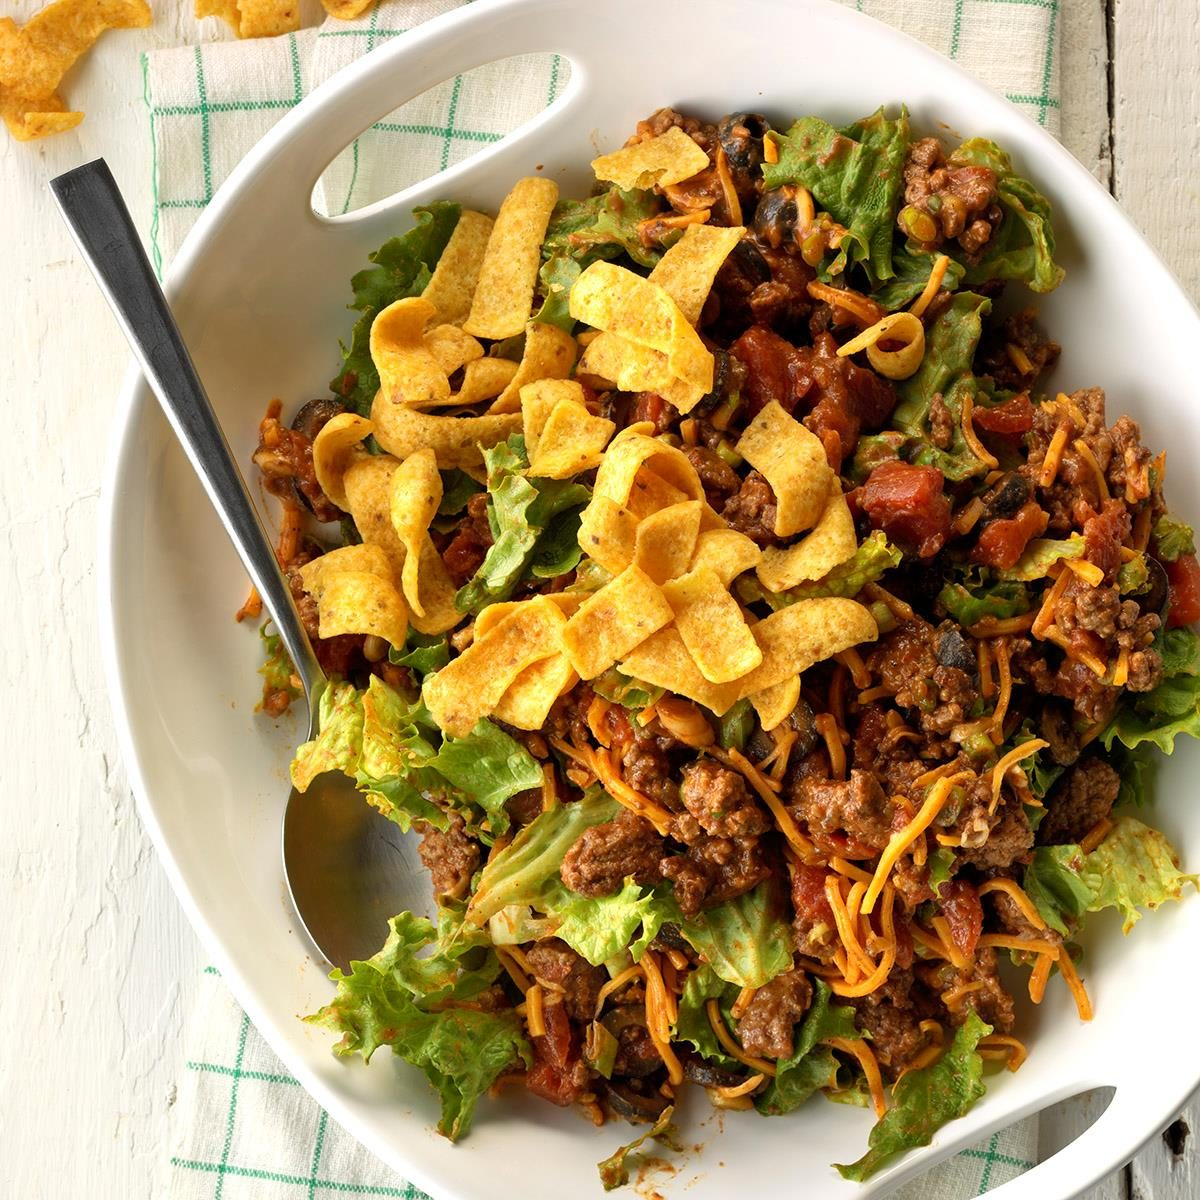 Day 5 Lunch: Ground Beef Taco Salad